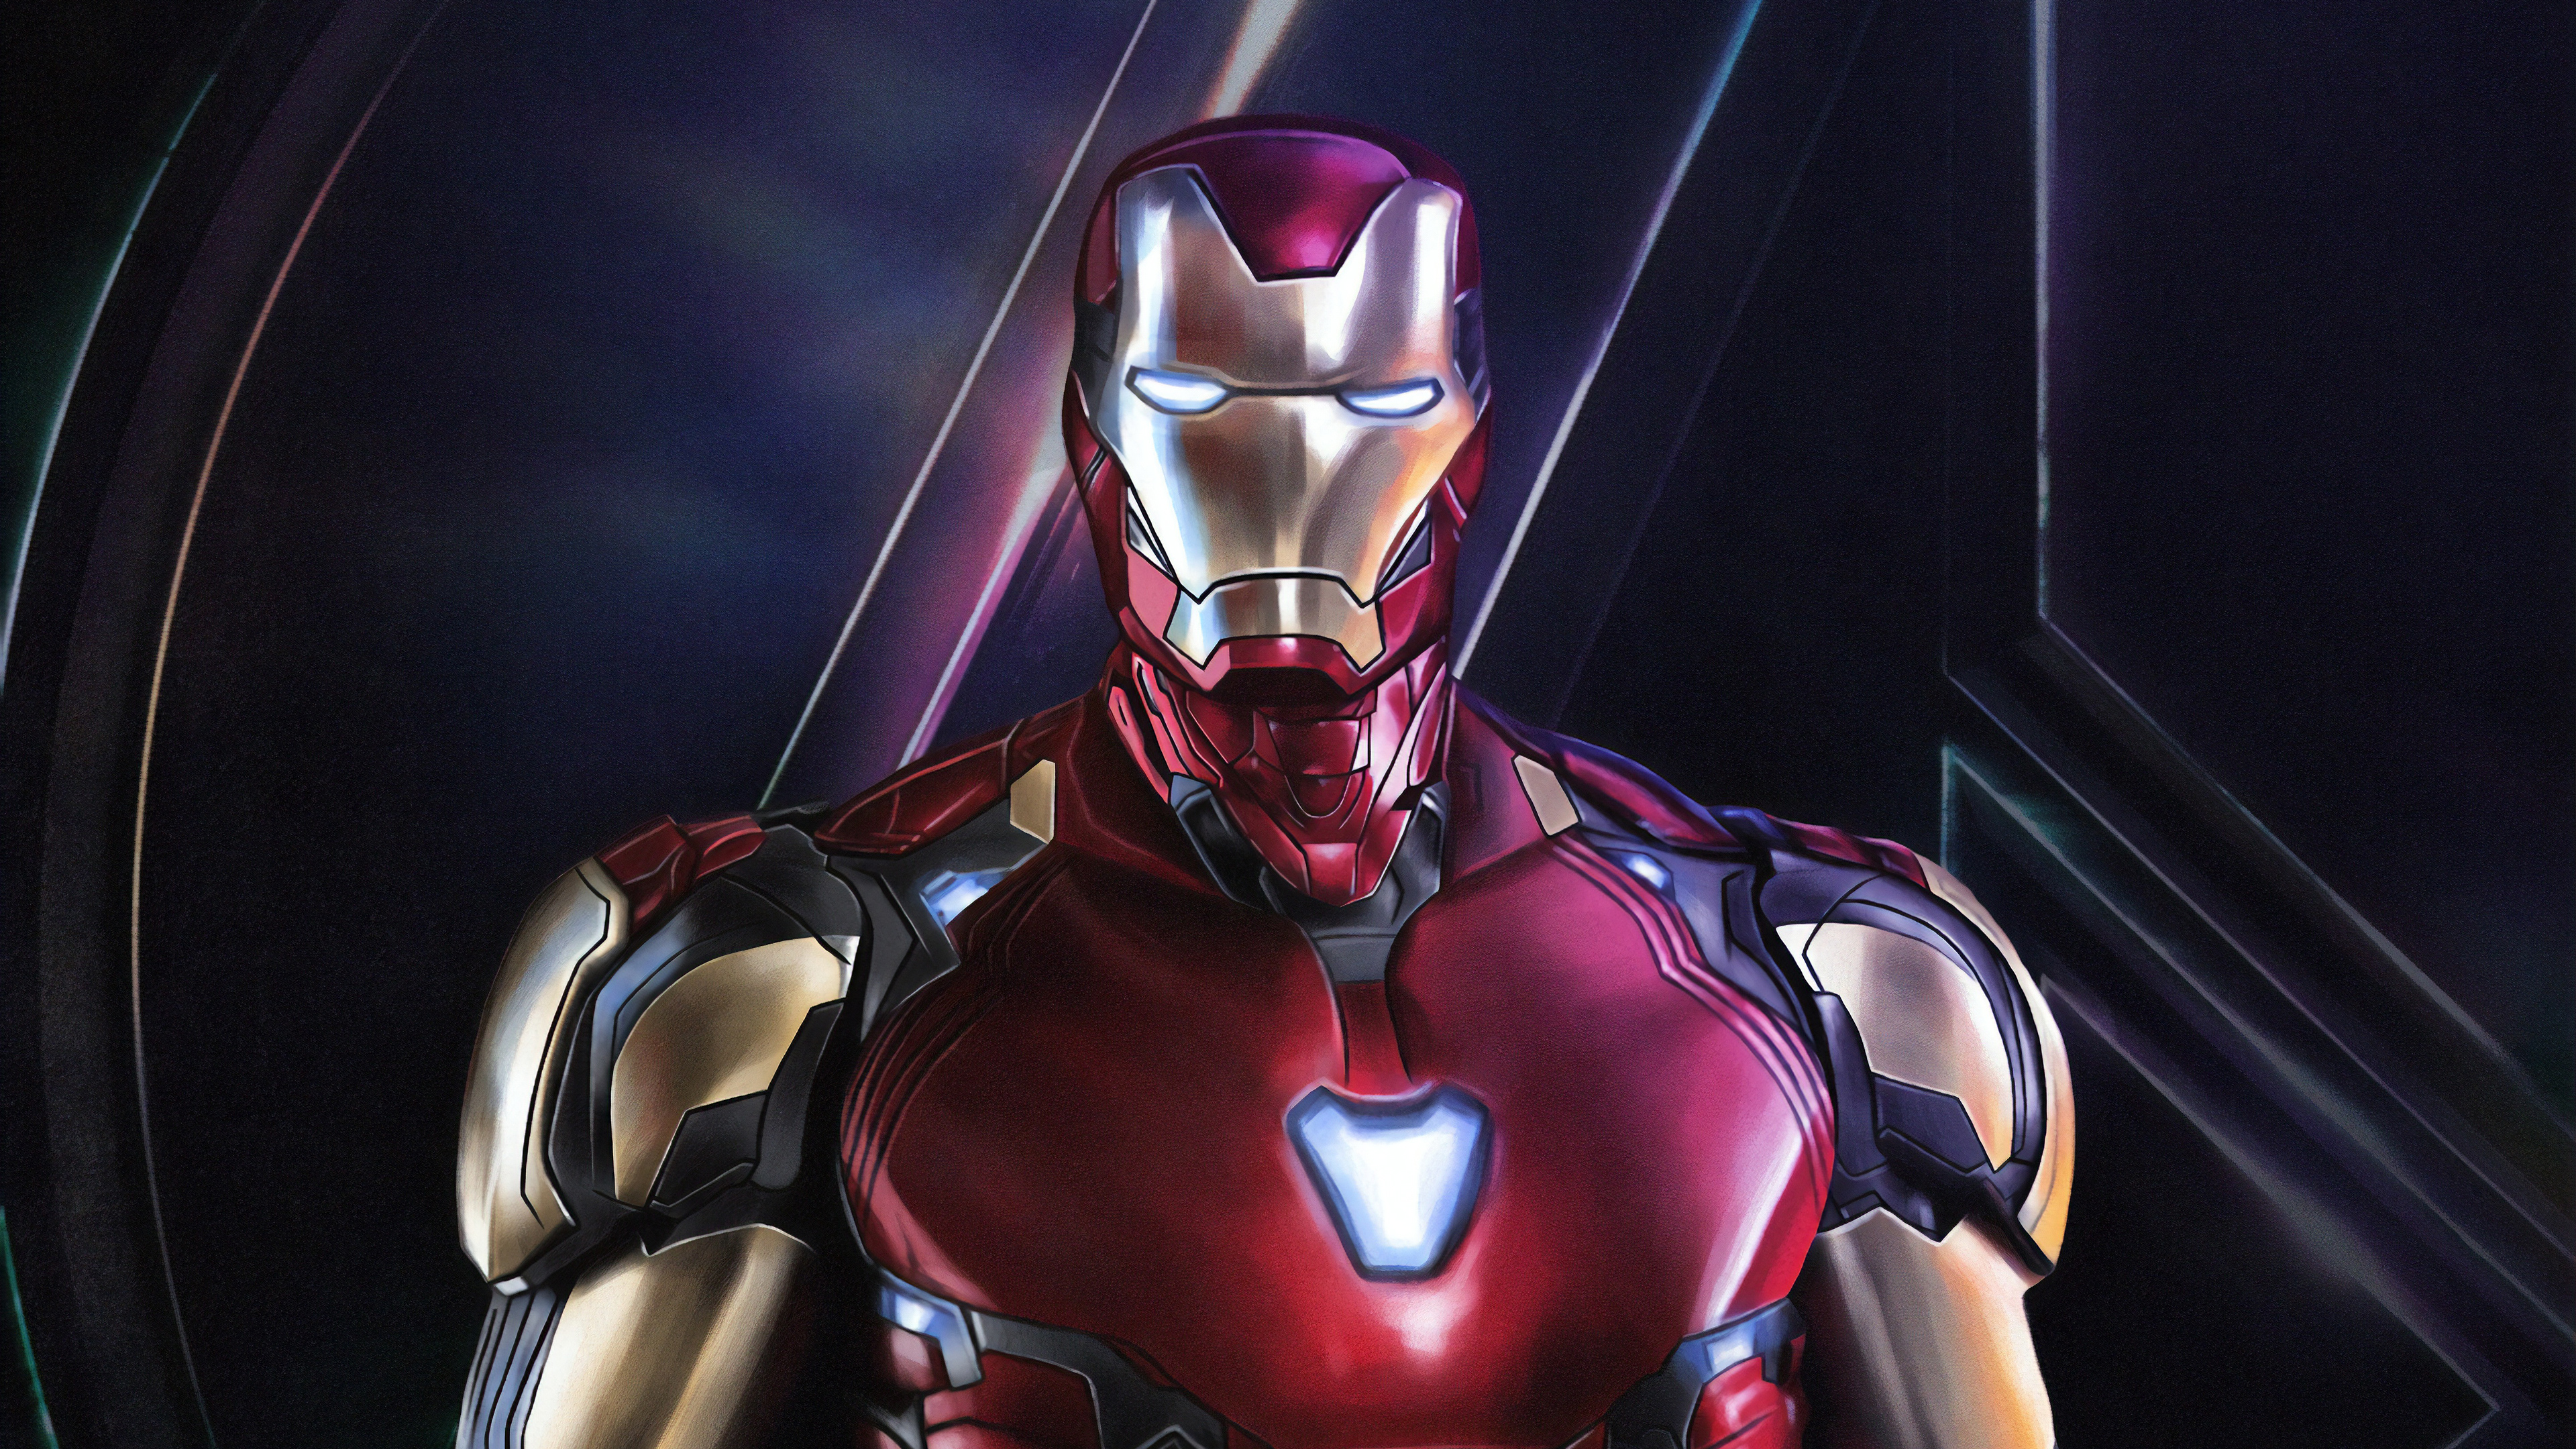 Wallpaper 4k 4k Iron Man Avengers Endgame 4k Wallpapers